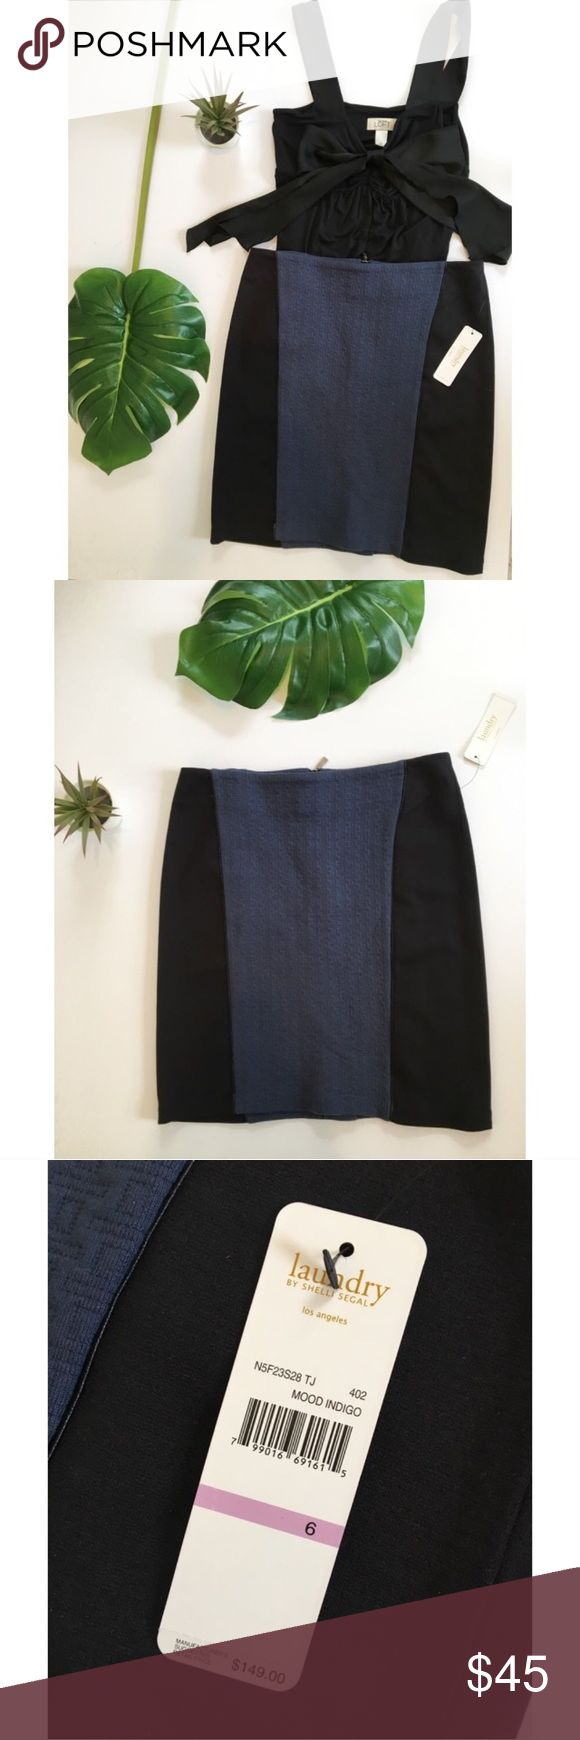 Laundry by Shelli Segal Black Blue Pencil Skirt New with tags! Never worn. Blue and black pencil skirt by Laundry by Shelli Segal. Quilted blue accented with black and faux leather black trim. Great as business casual work wear or can be dressed up. Laundry By Shelli Segal Skirts Pencil